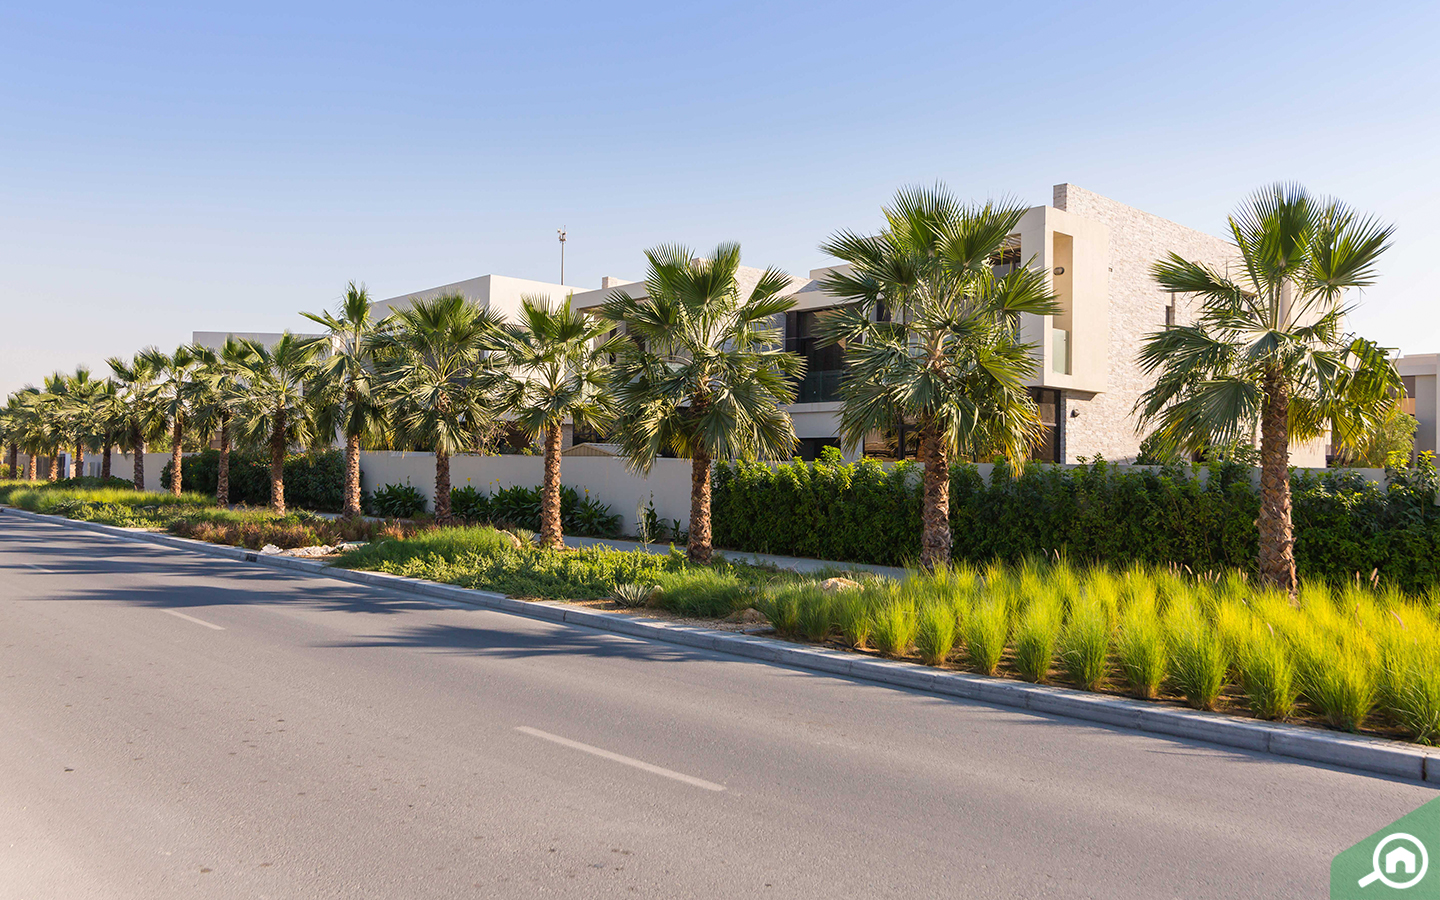 villas in damac hills